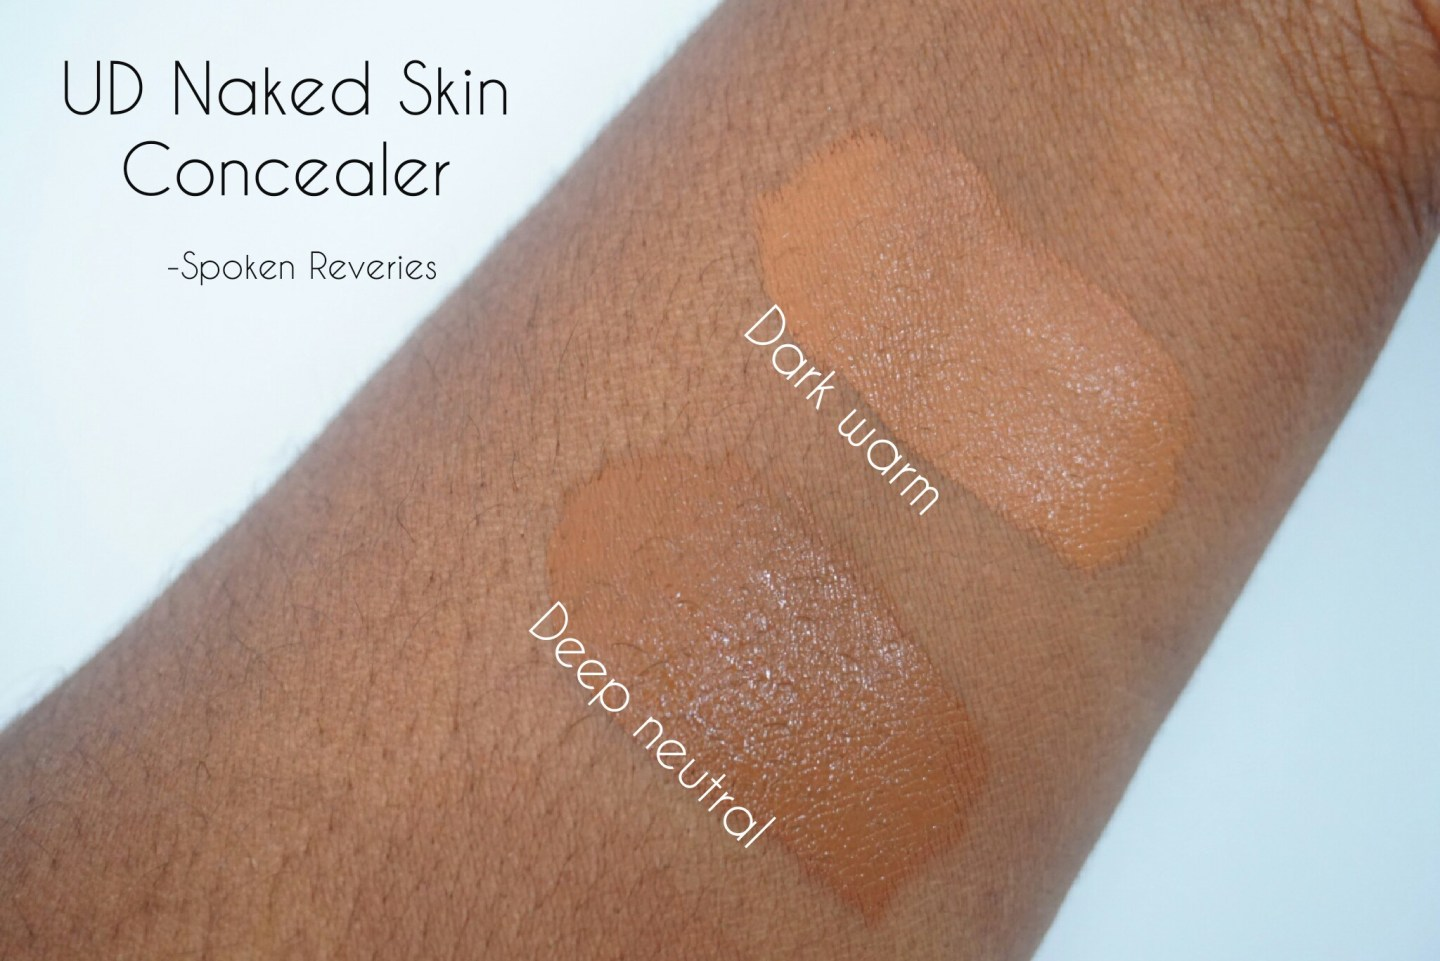 Naked Skin Concealers swatched